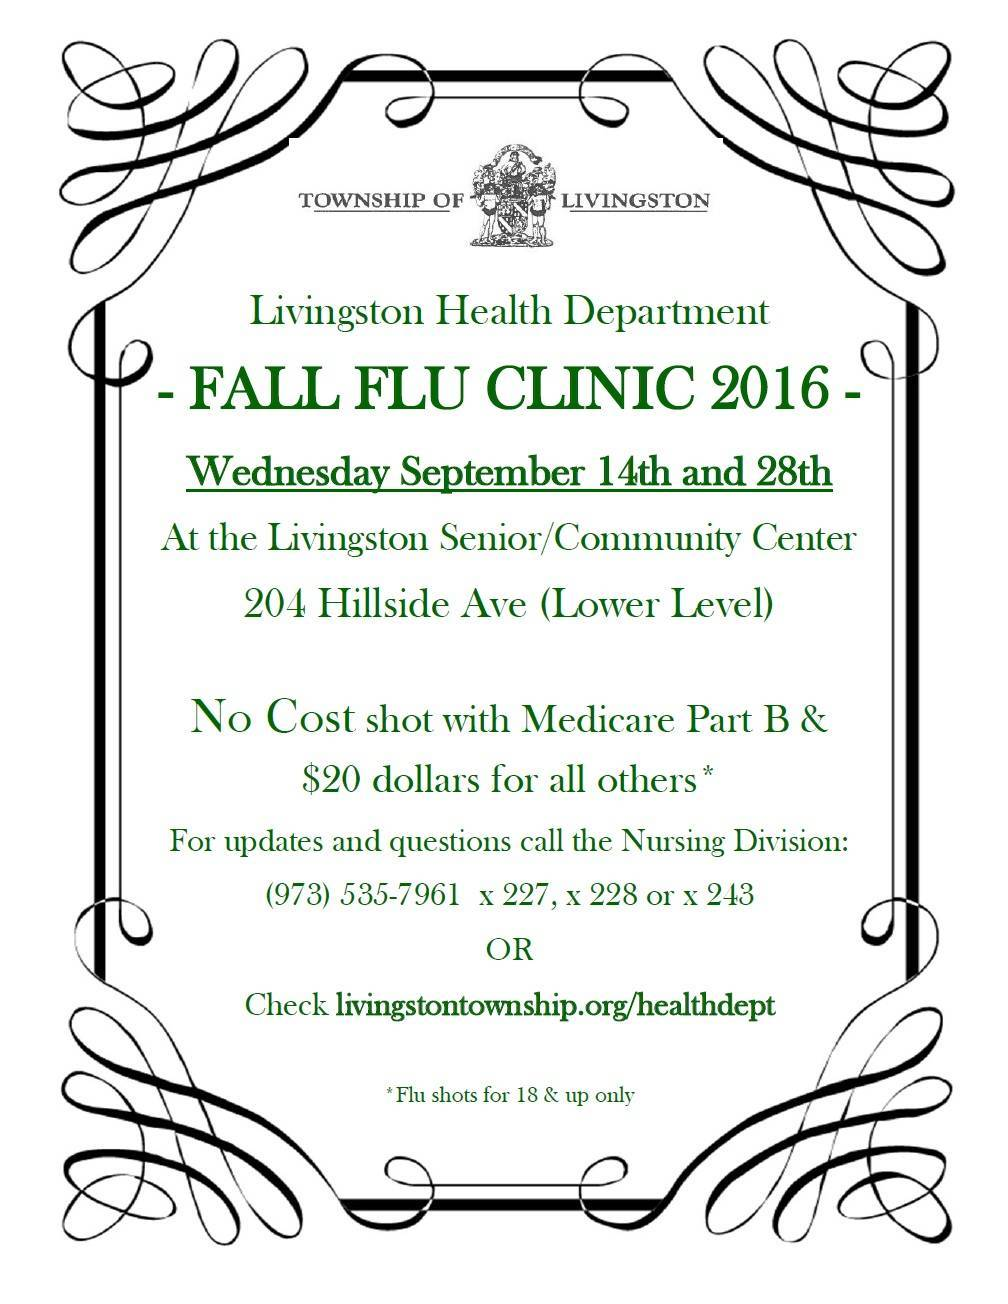 58bf03a3dceb7673744a_2016_Fall_Flu_Clinic_Flyer_for_website.jpg